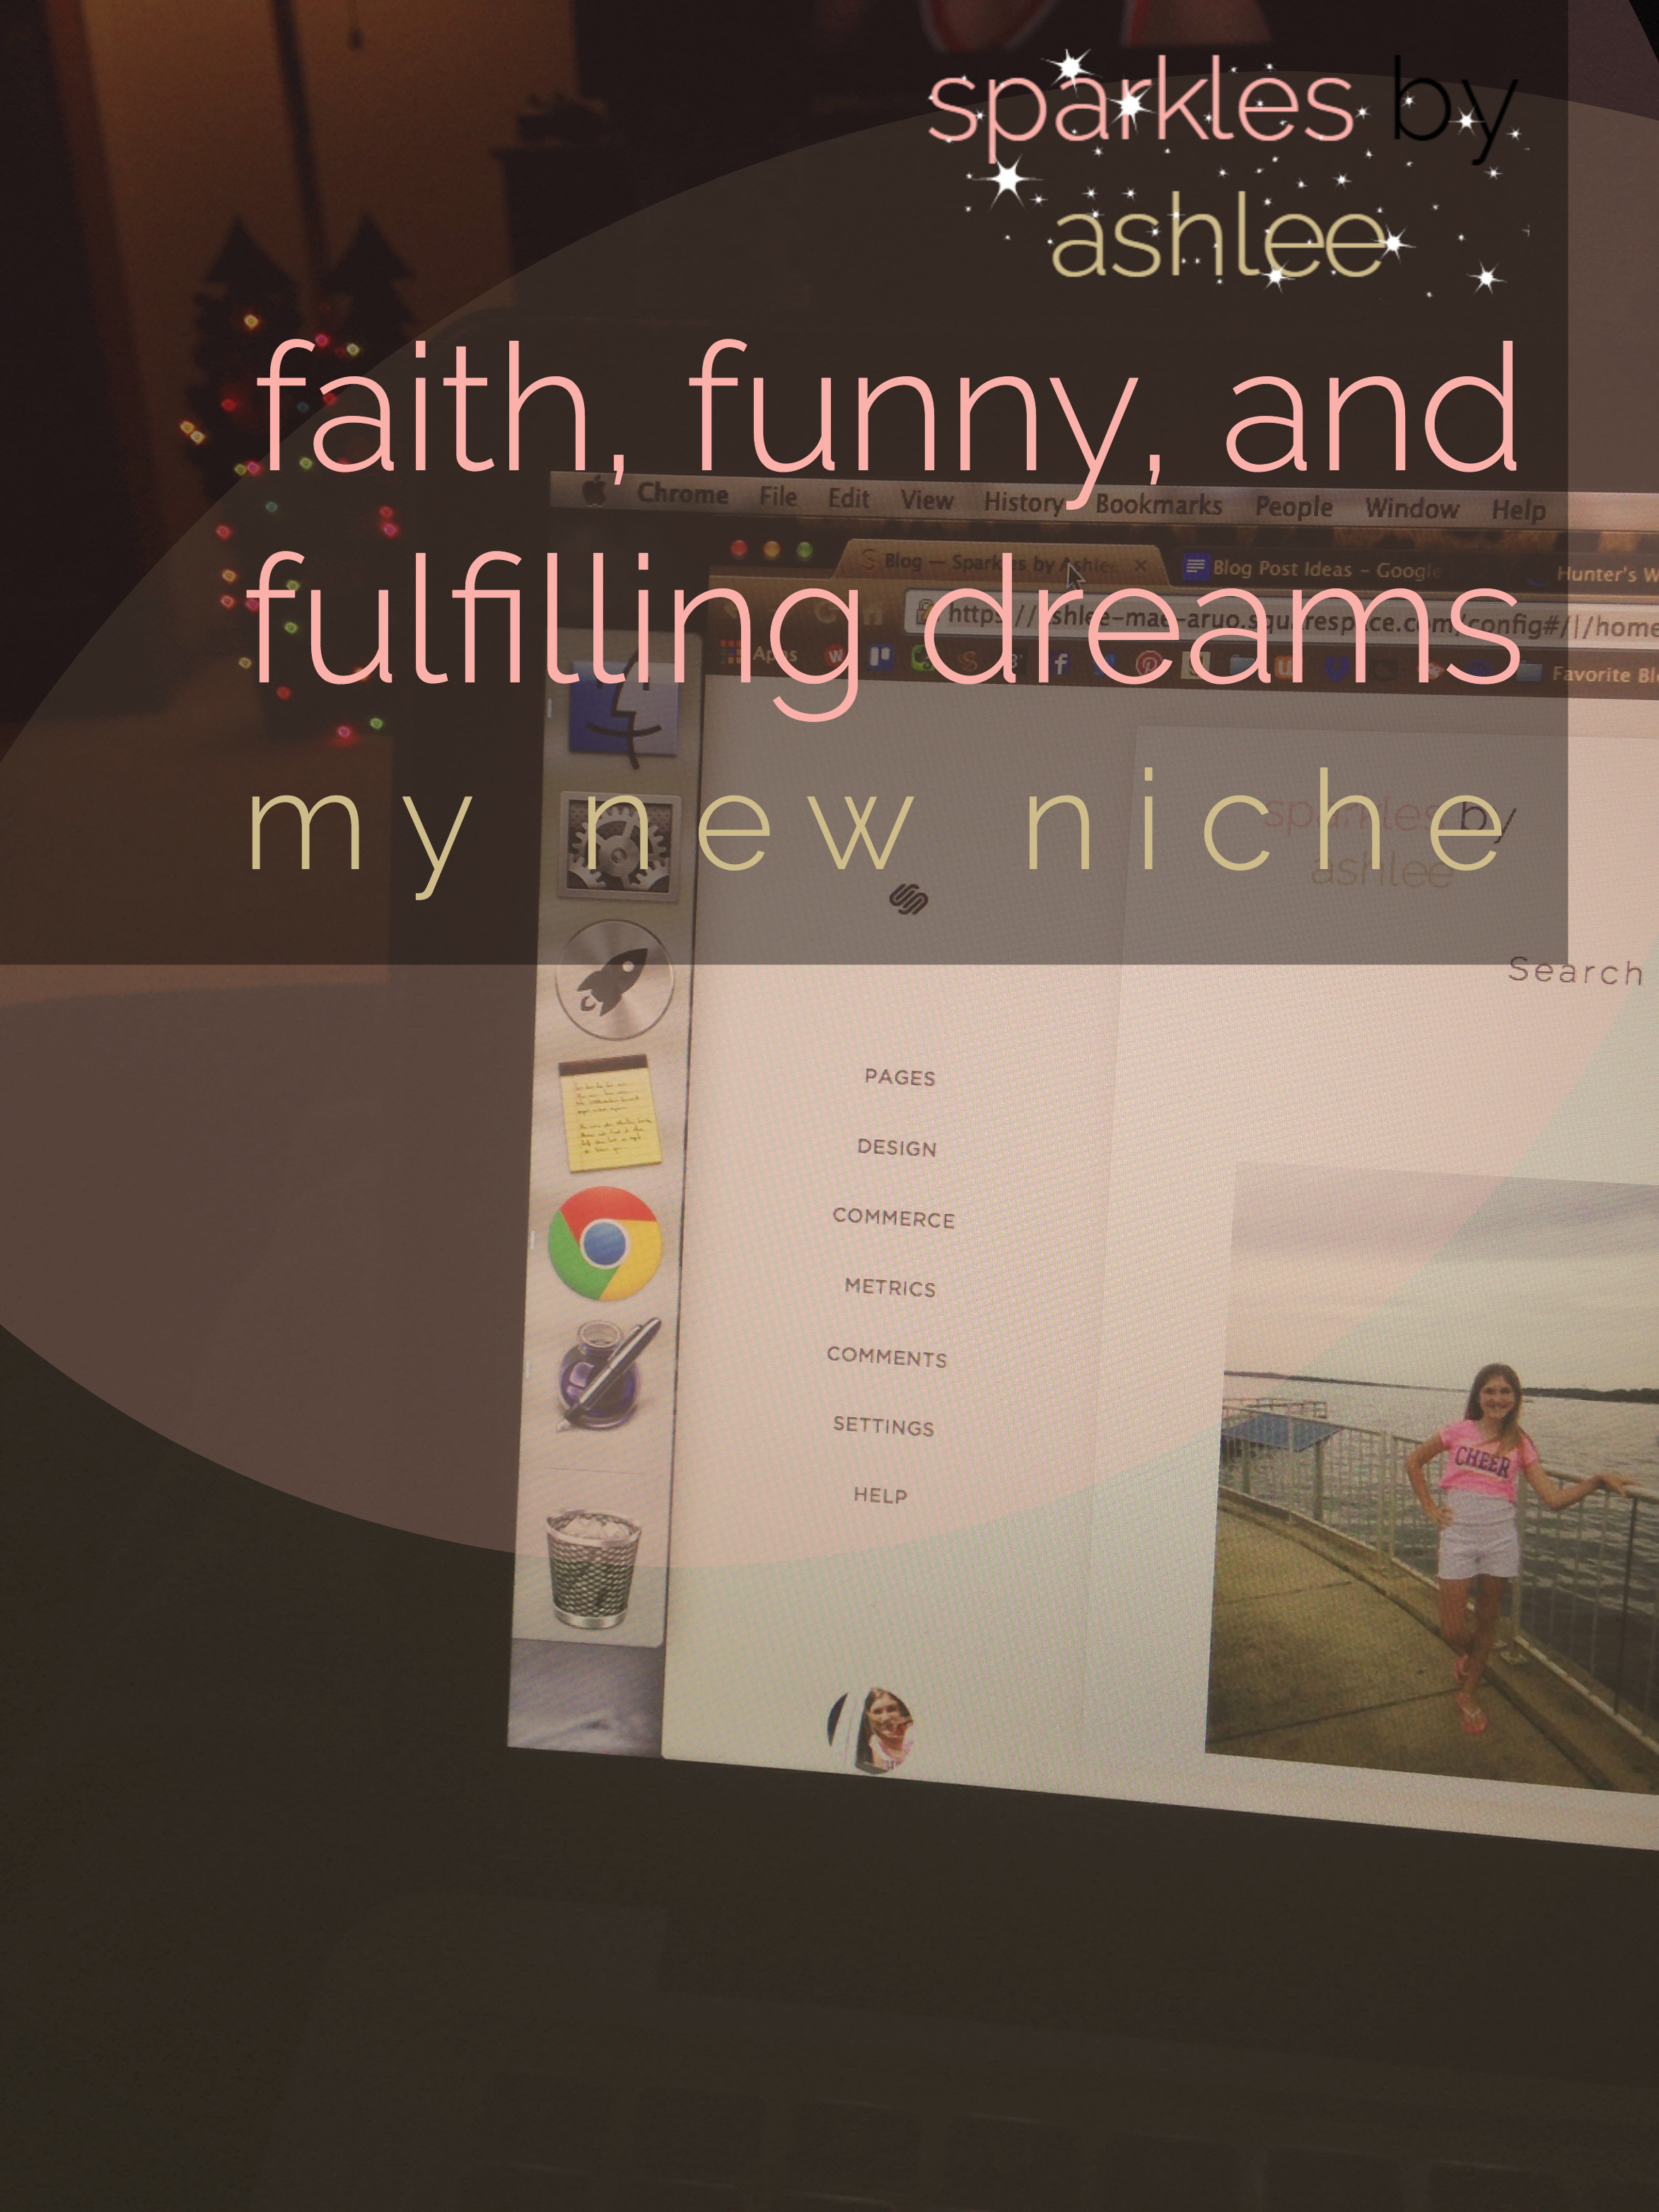 Faith-Funny-and-Fulfilling-Dreams-Sparkles-by-Ashlee.jpg